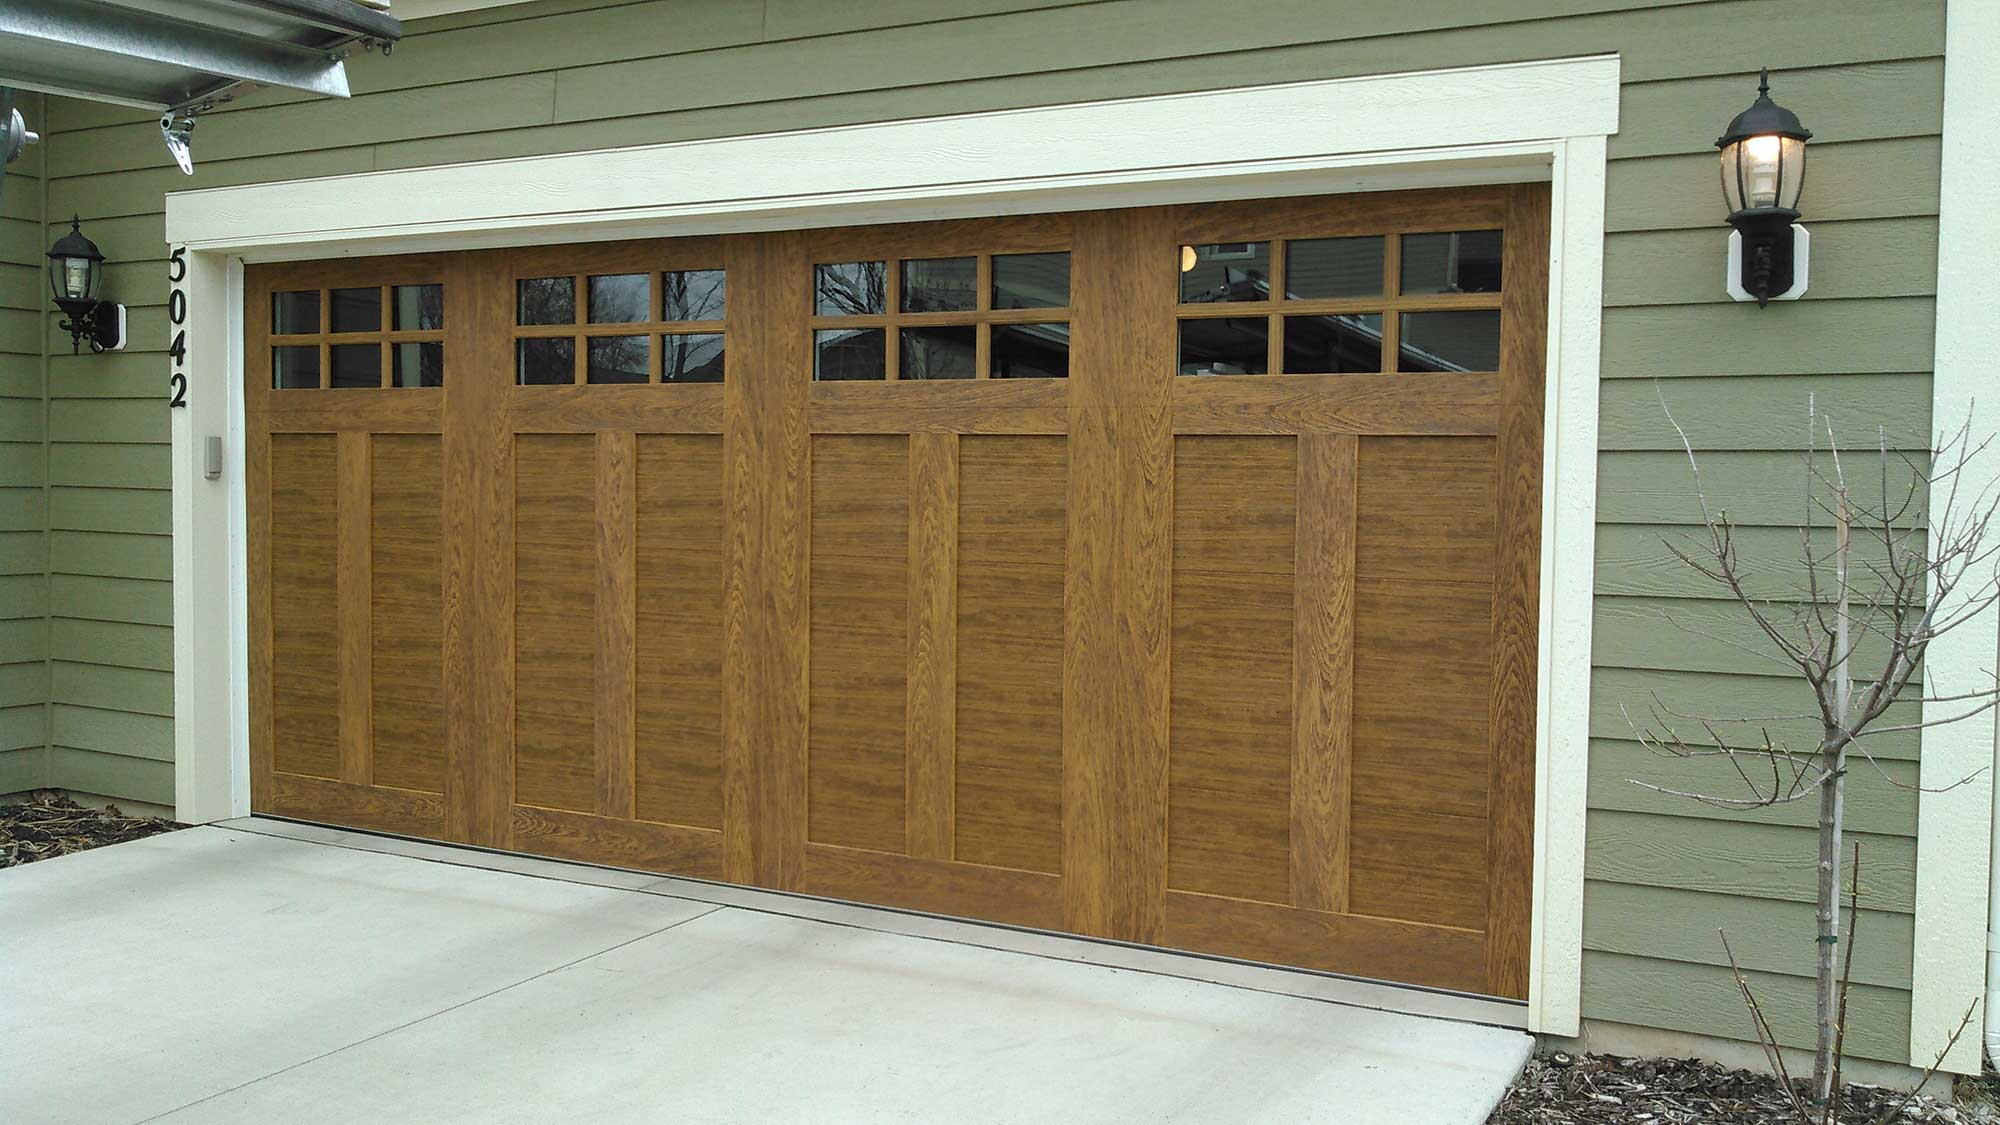 Professional Garage Door Services New Wood Grain Garage Door With Windows